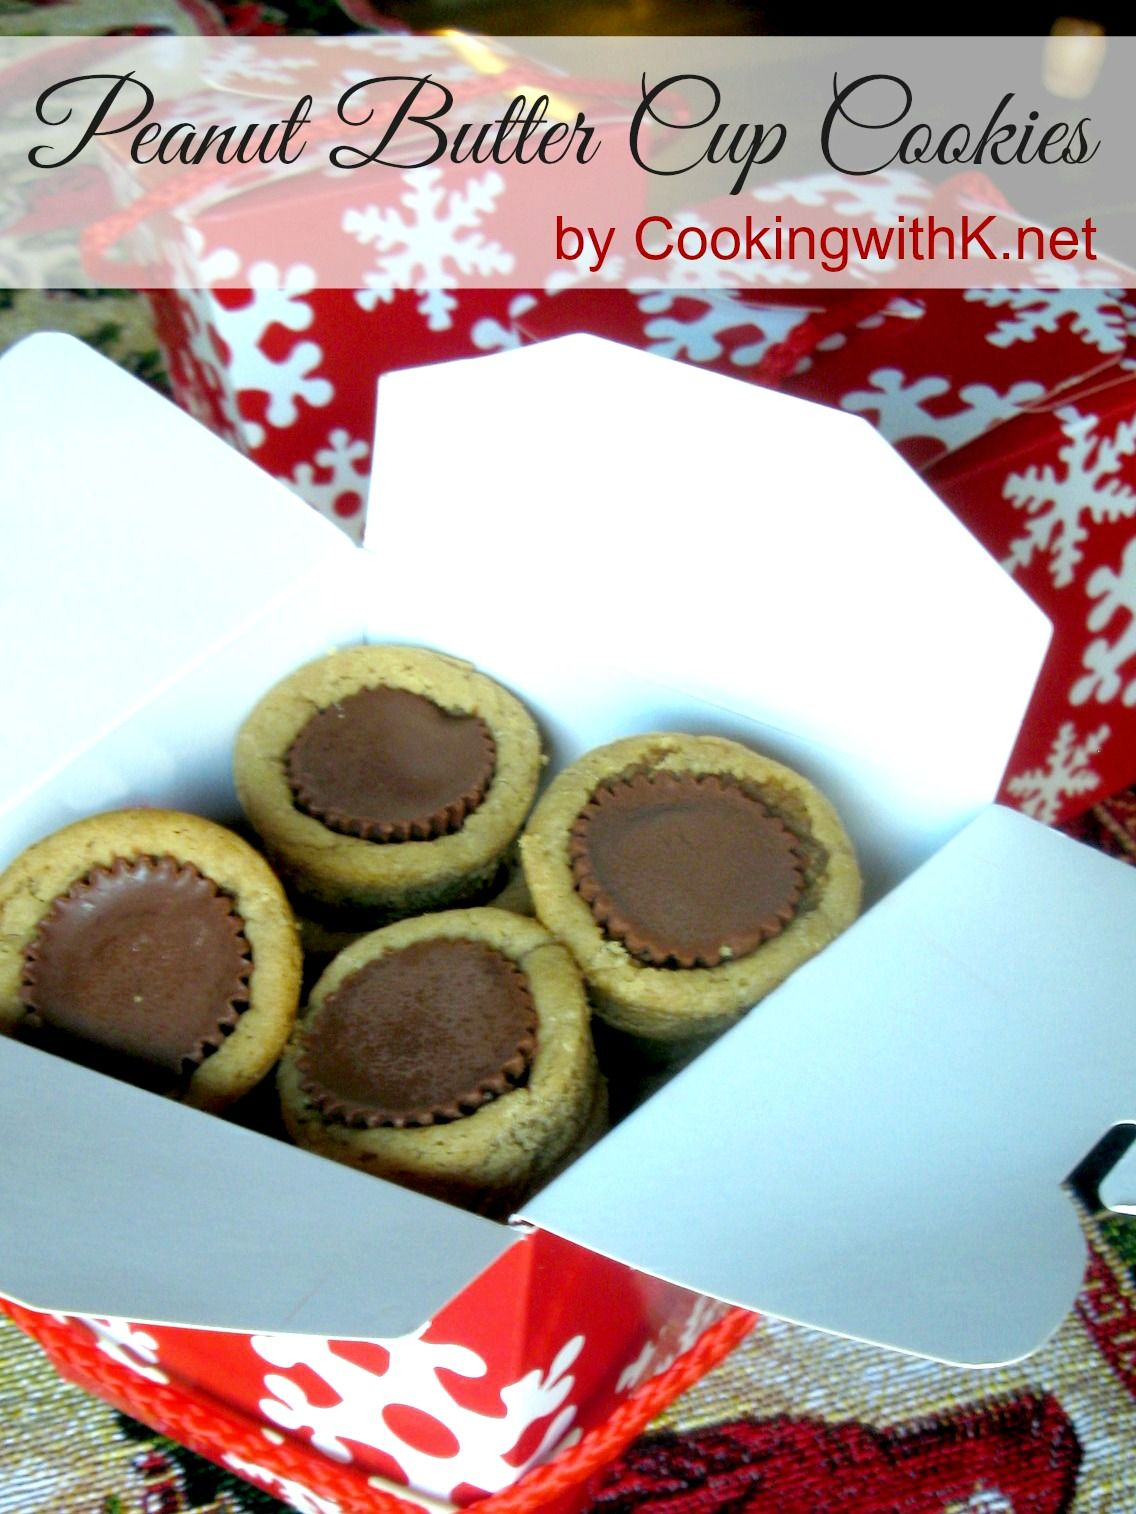 Reese's Peanut Butter Cup Cookies Using Pillsbury Refrigerated